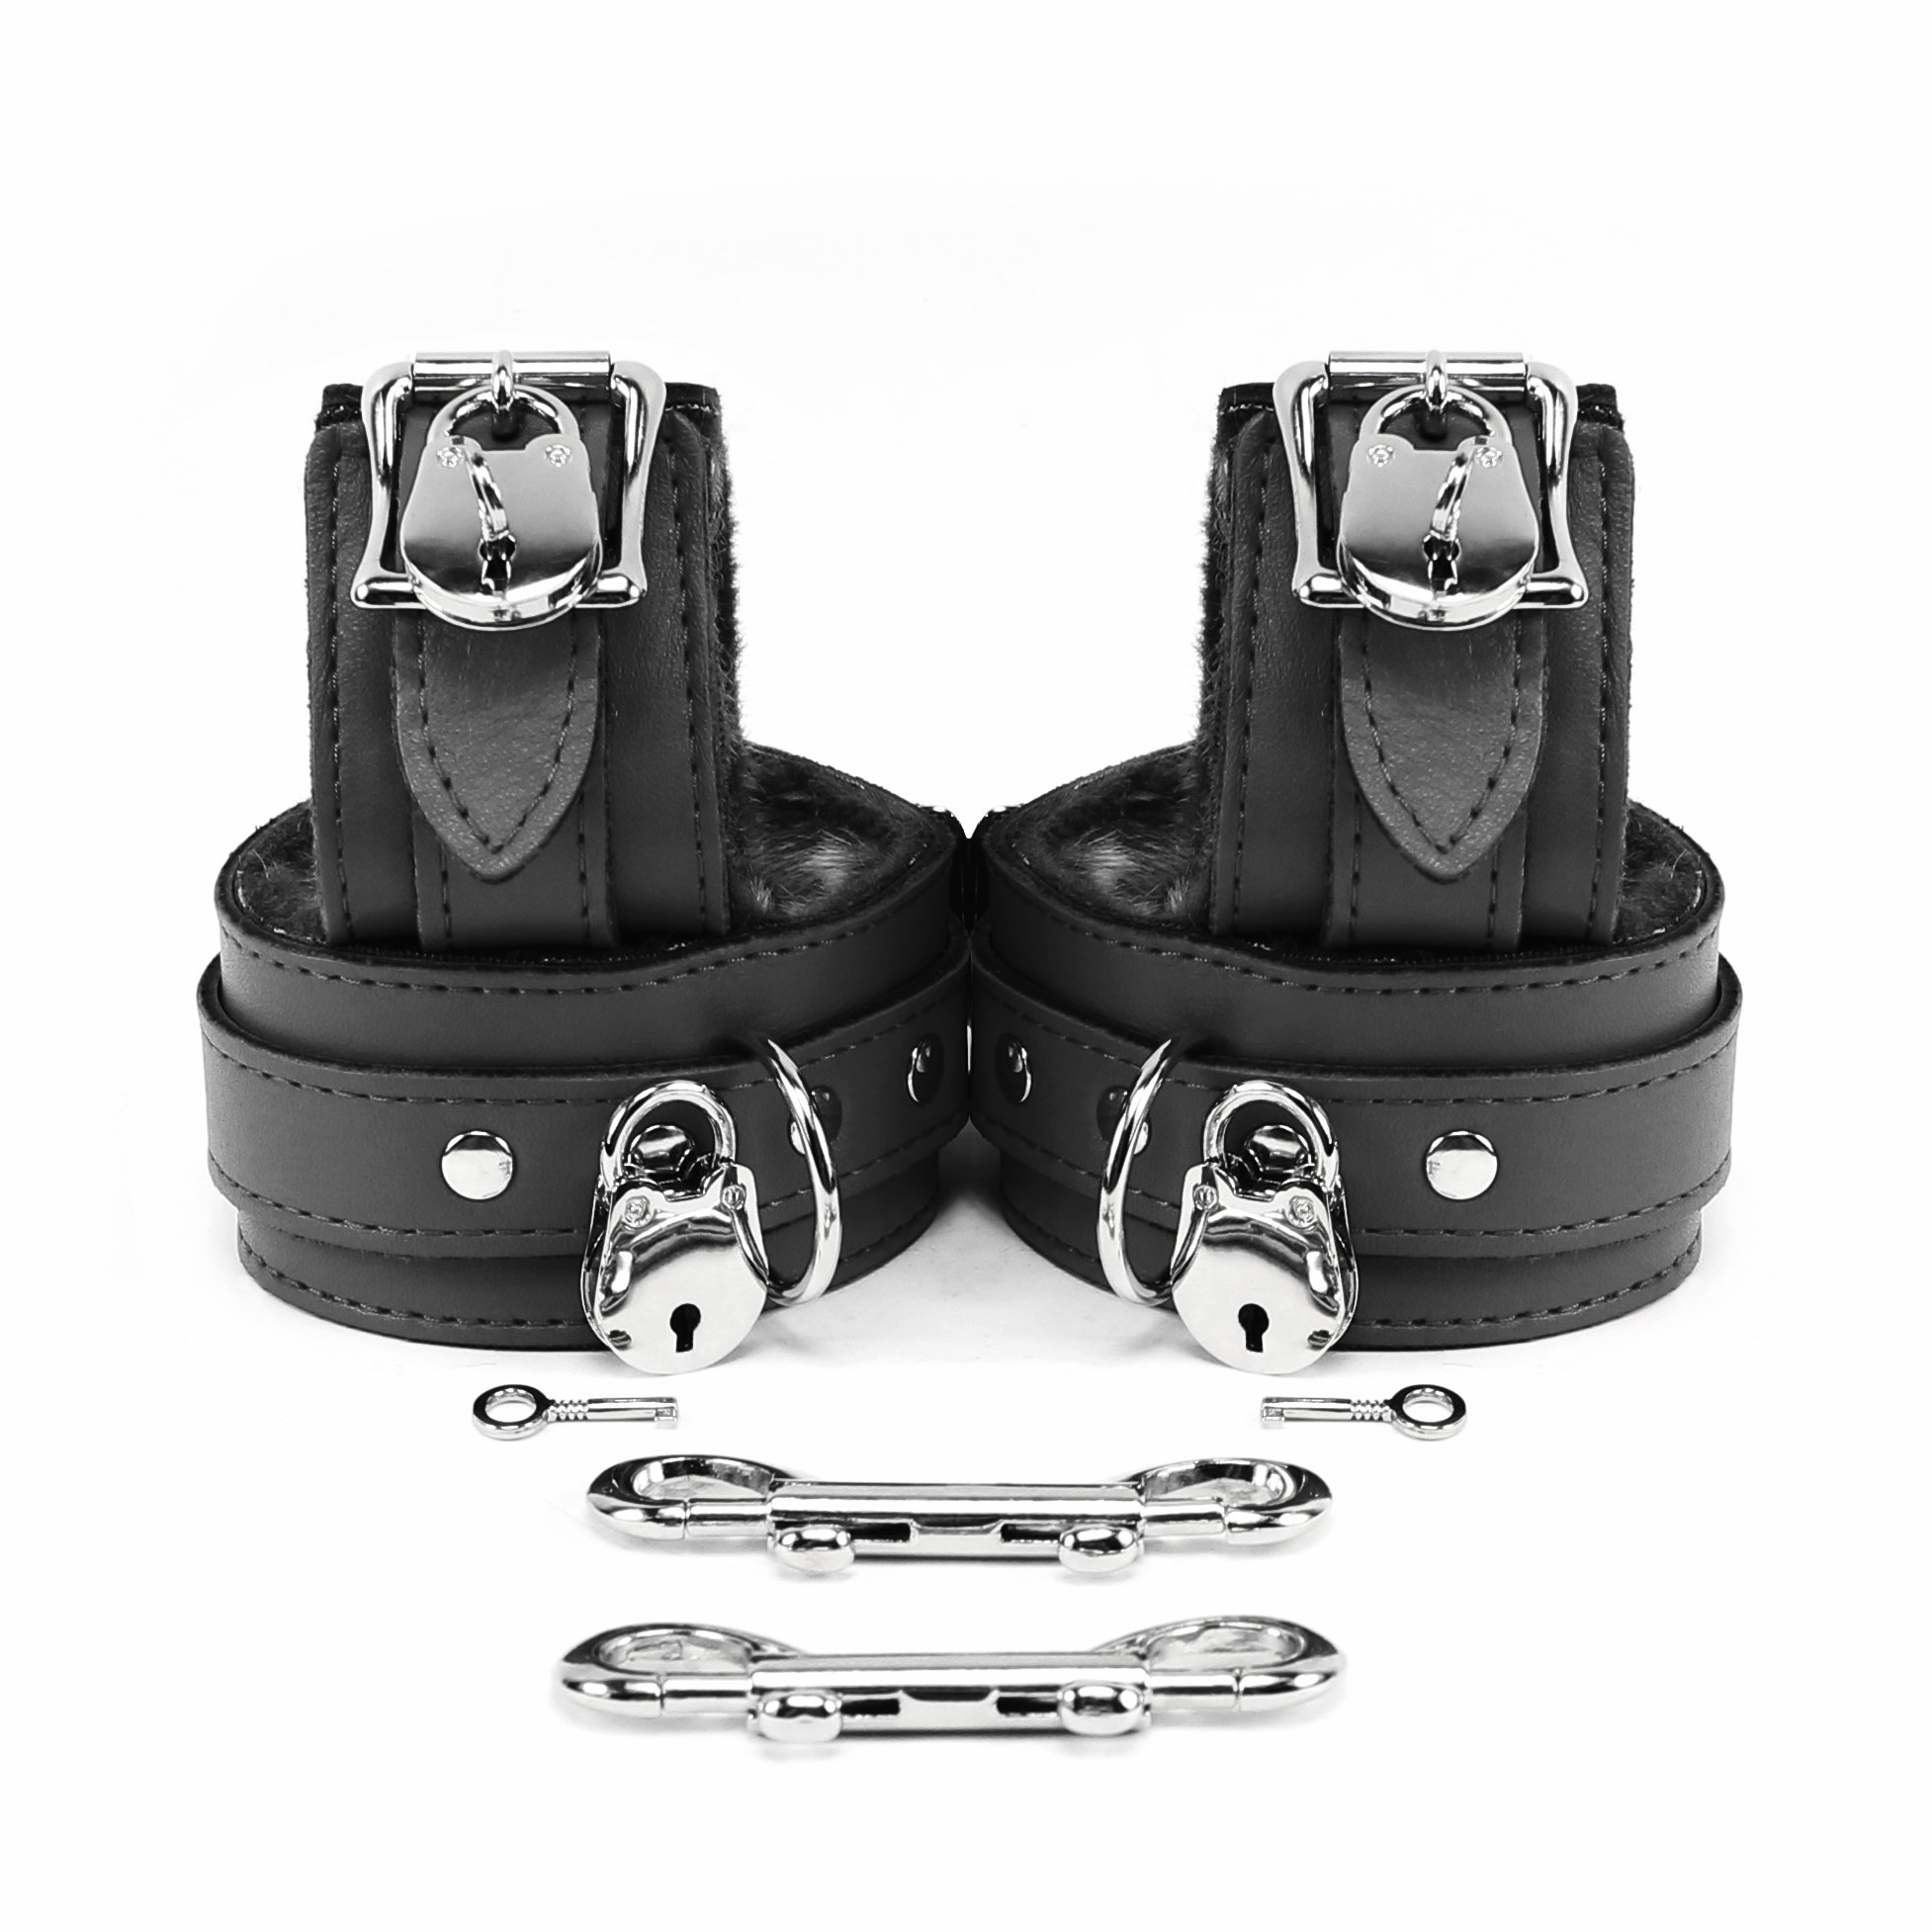 VP Leather Berlin Lockable Wrist and Ankle Cuffs Combo Handmade Lambskin Leather Handcuffs and Leg Cuffs (Black)